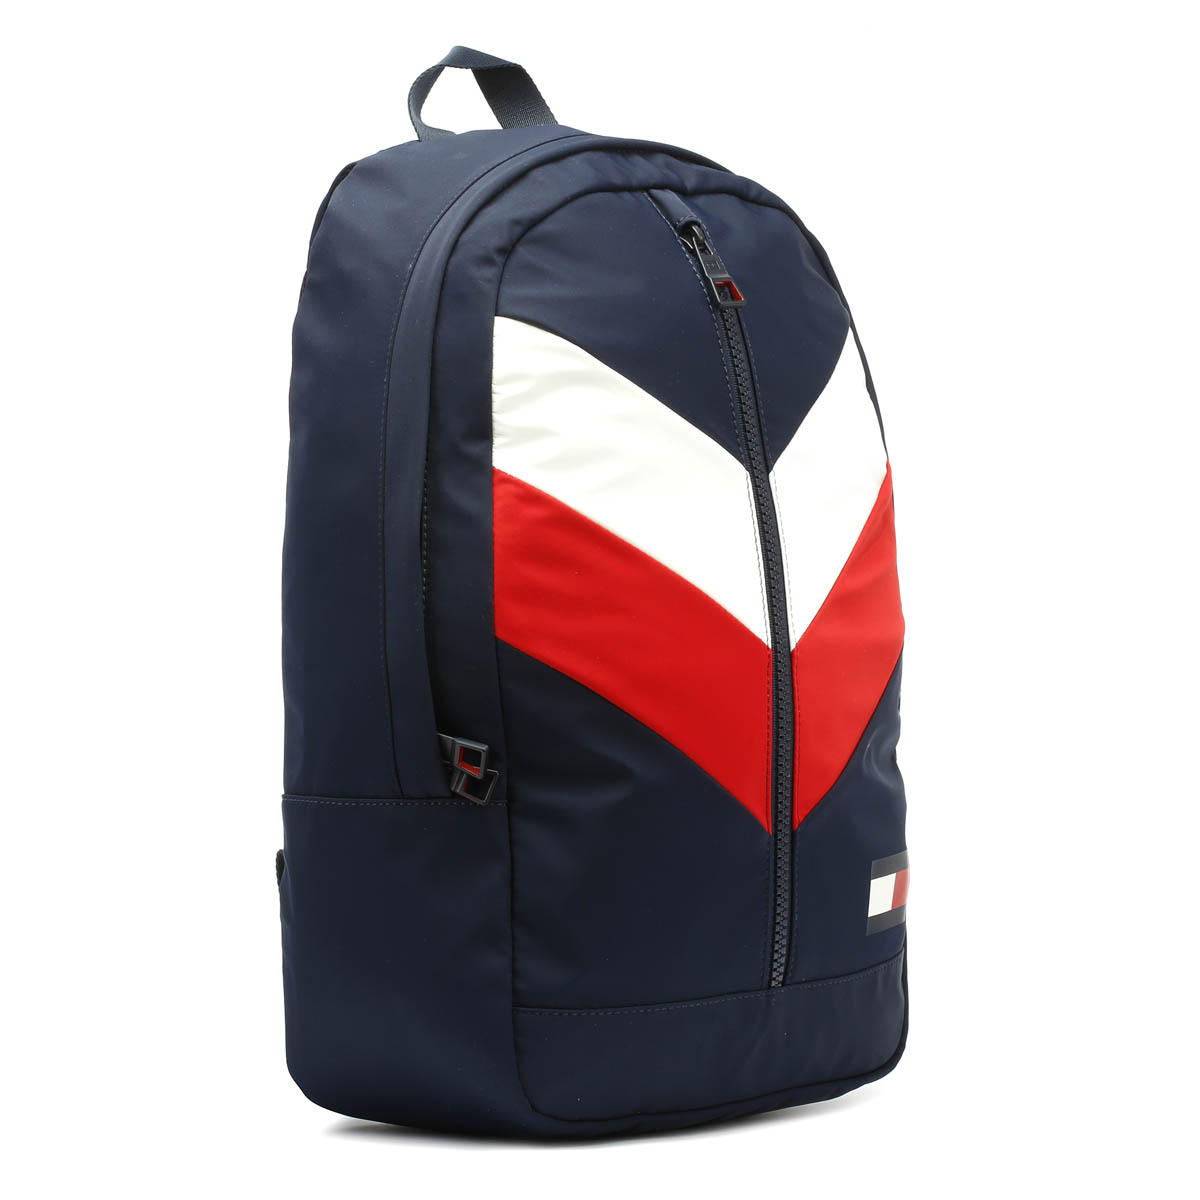 Tommy Hilfiger Chevron Corporate Navy Backpack Travel Unisex Bag ... 556afe8b51e99